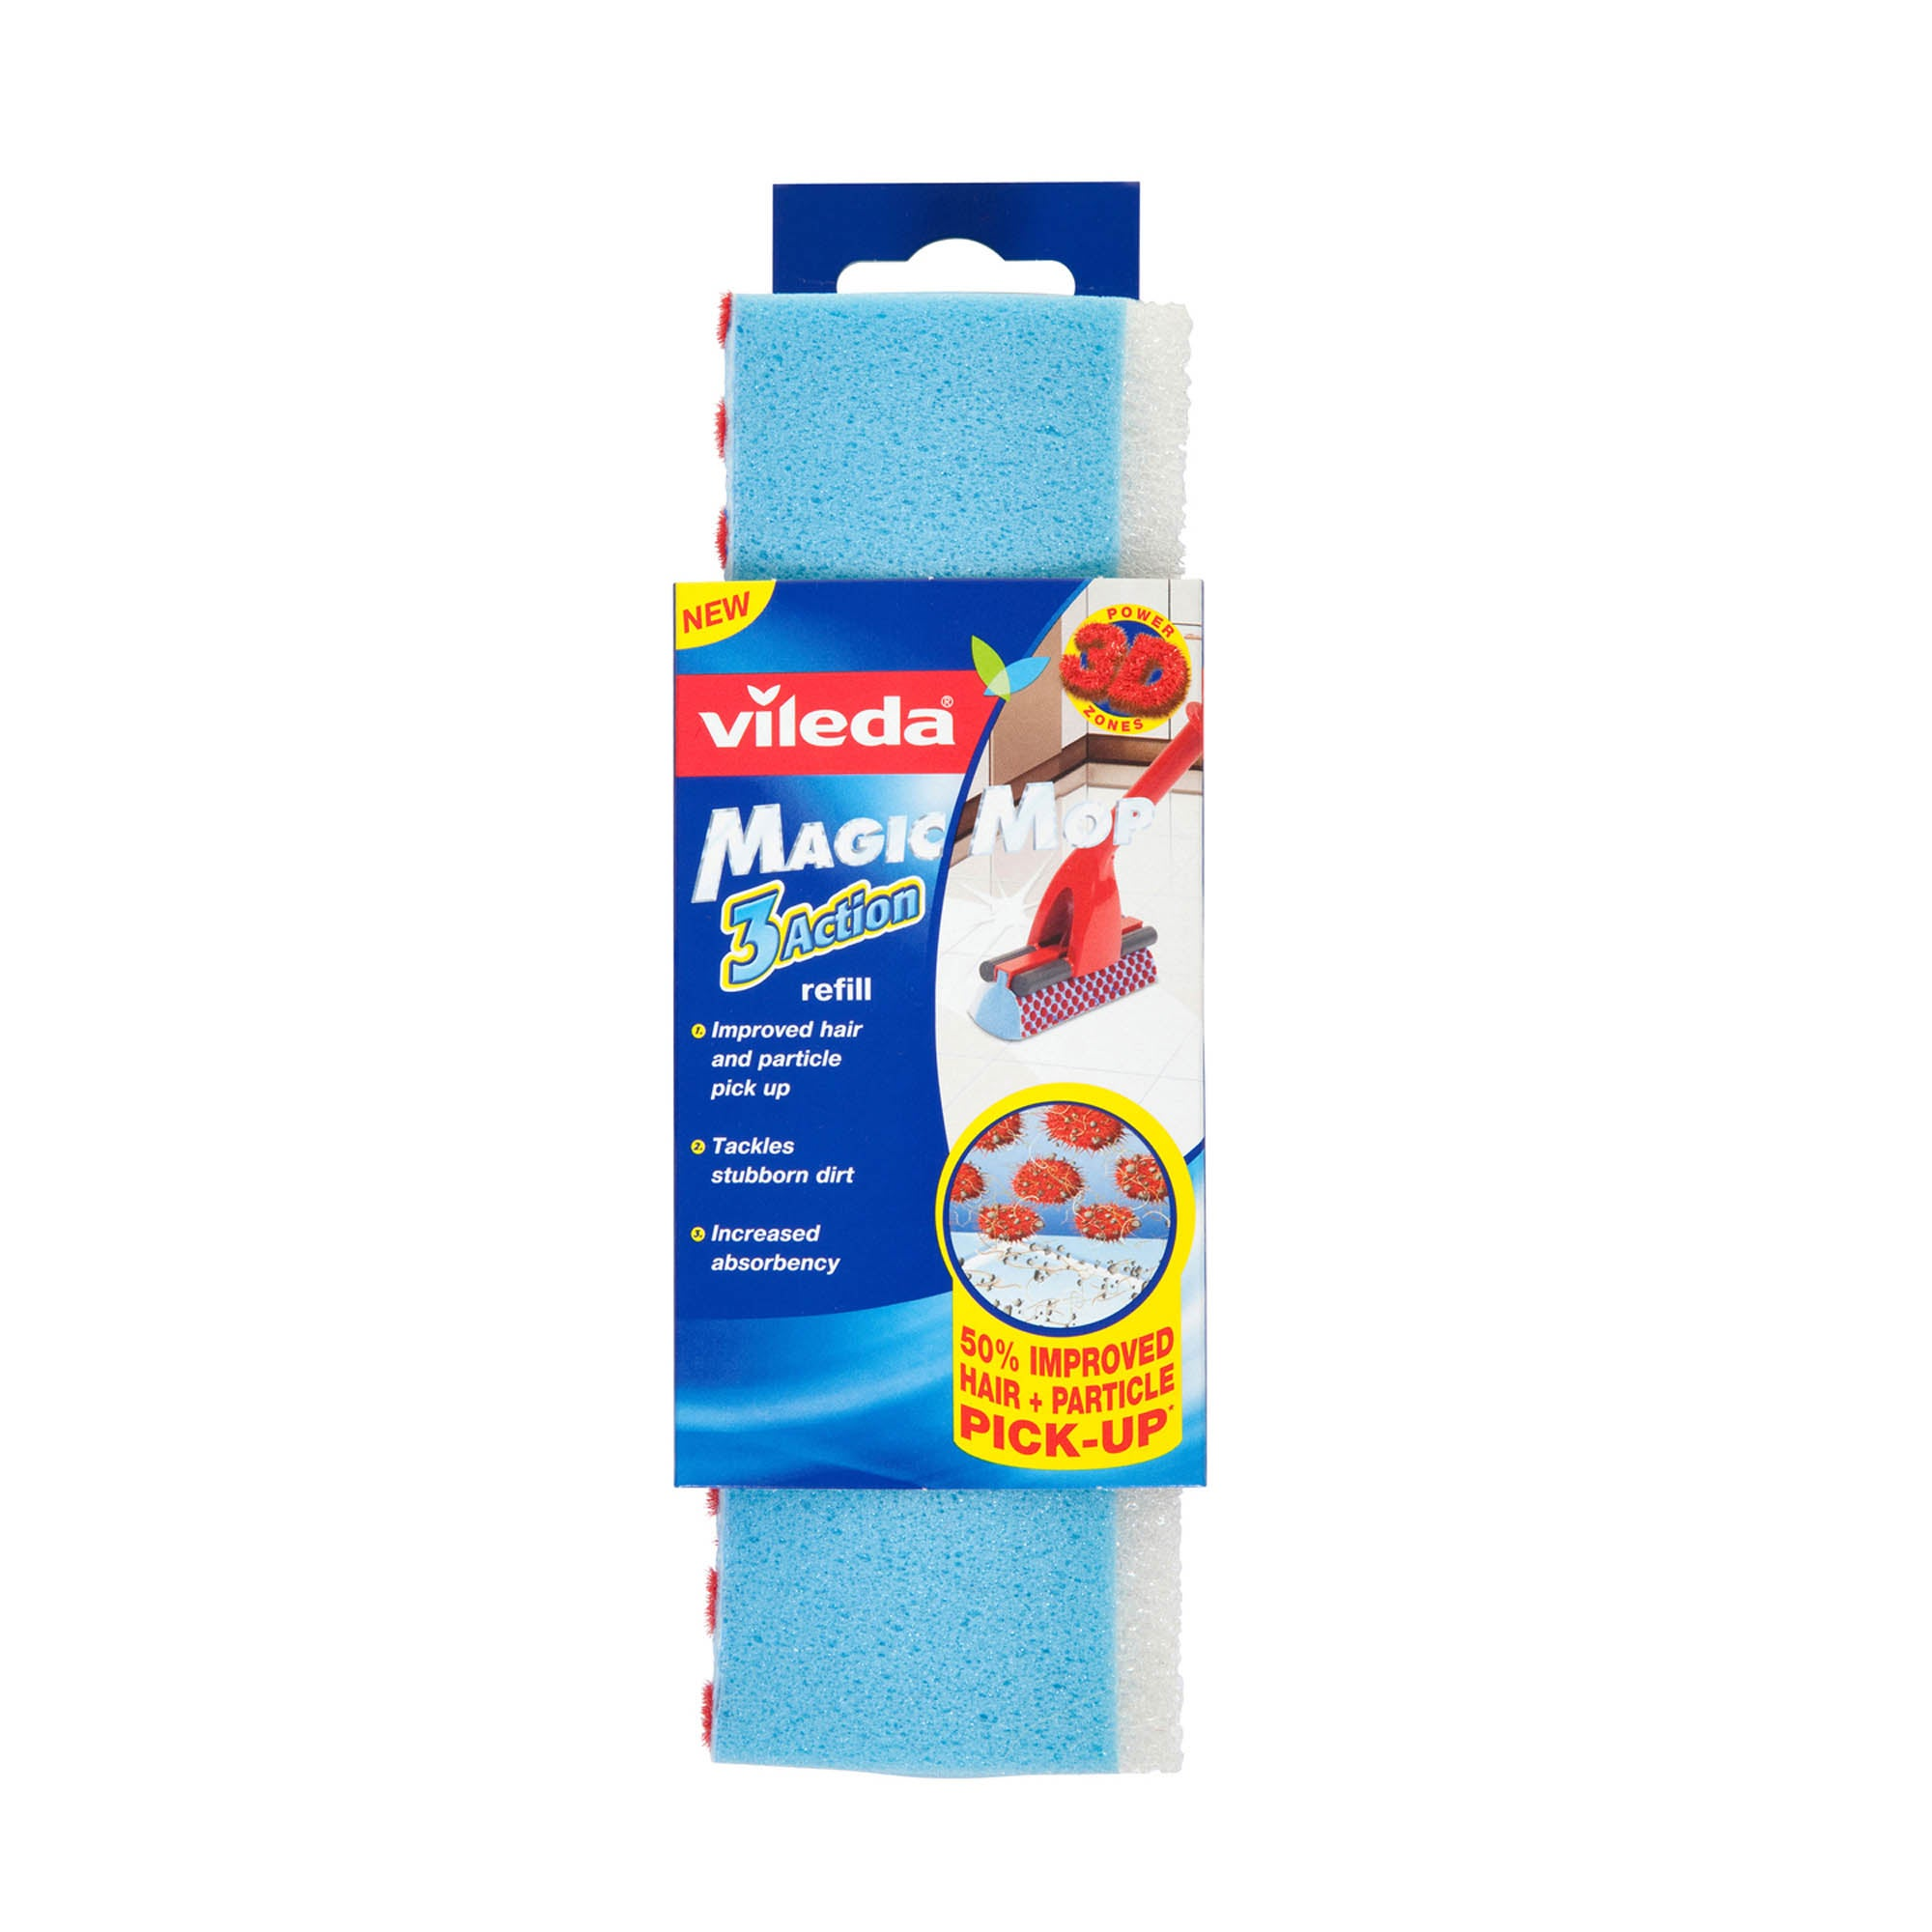 Vileda Magic Mop Head Refill